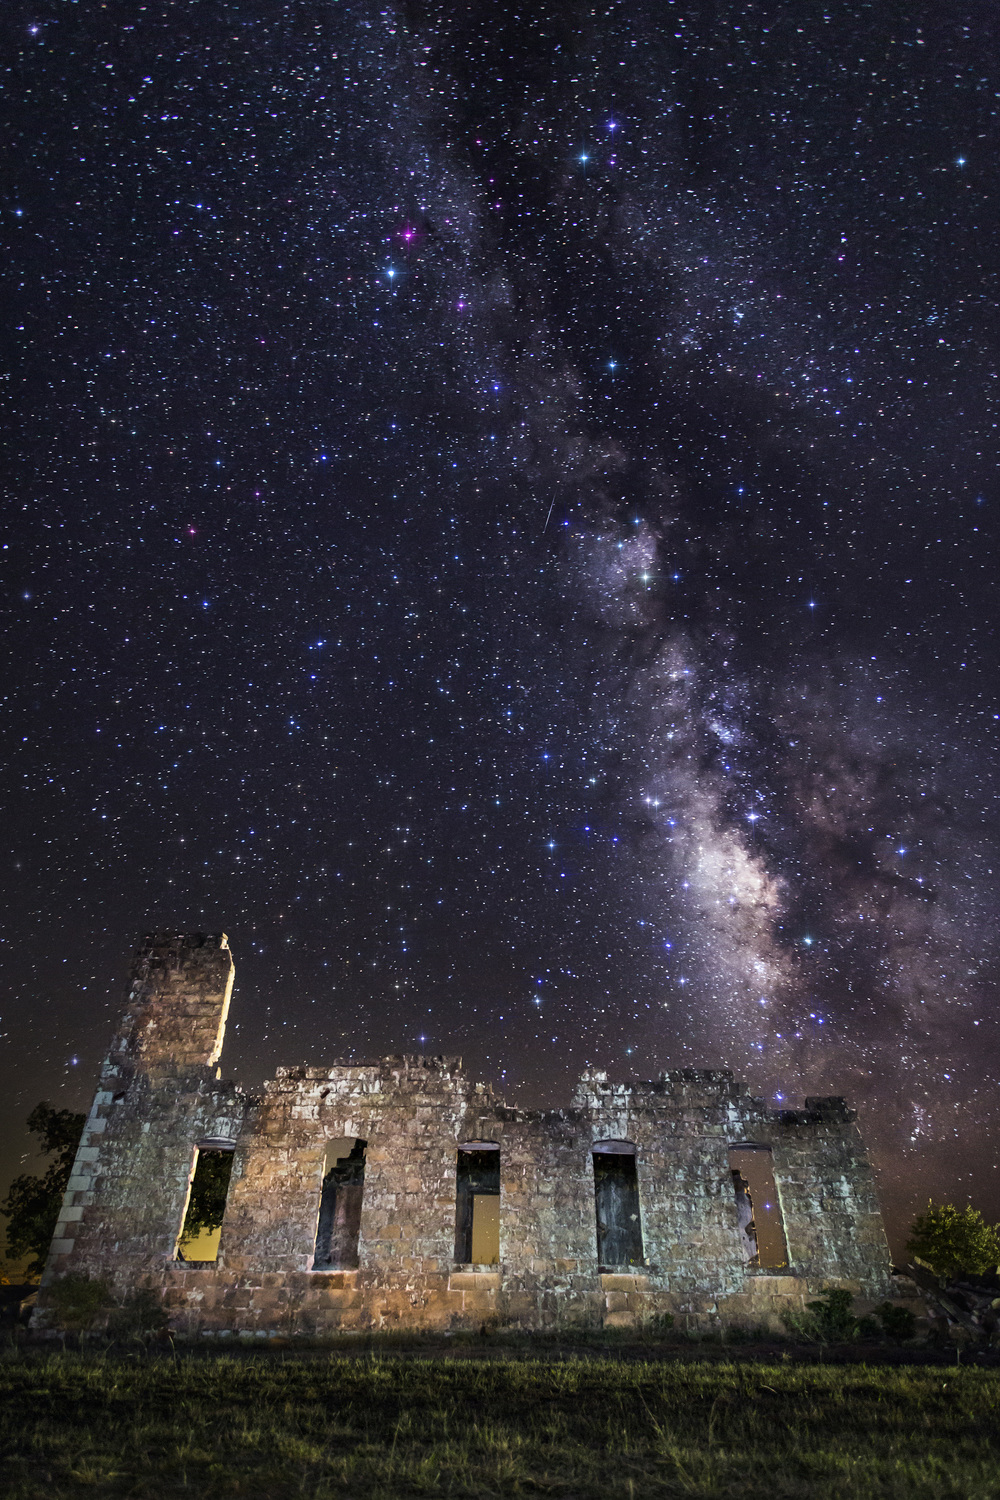 Milky Way over the San Fernando Academy ruins in Pontotoc, Texas.